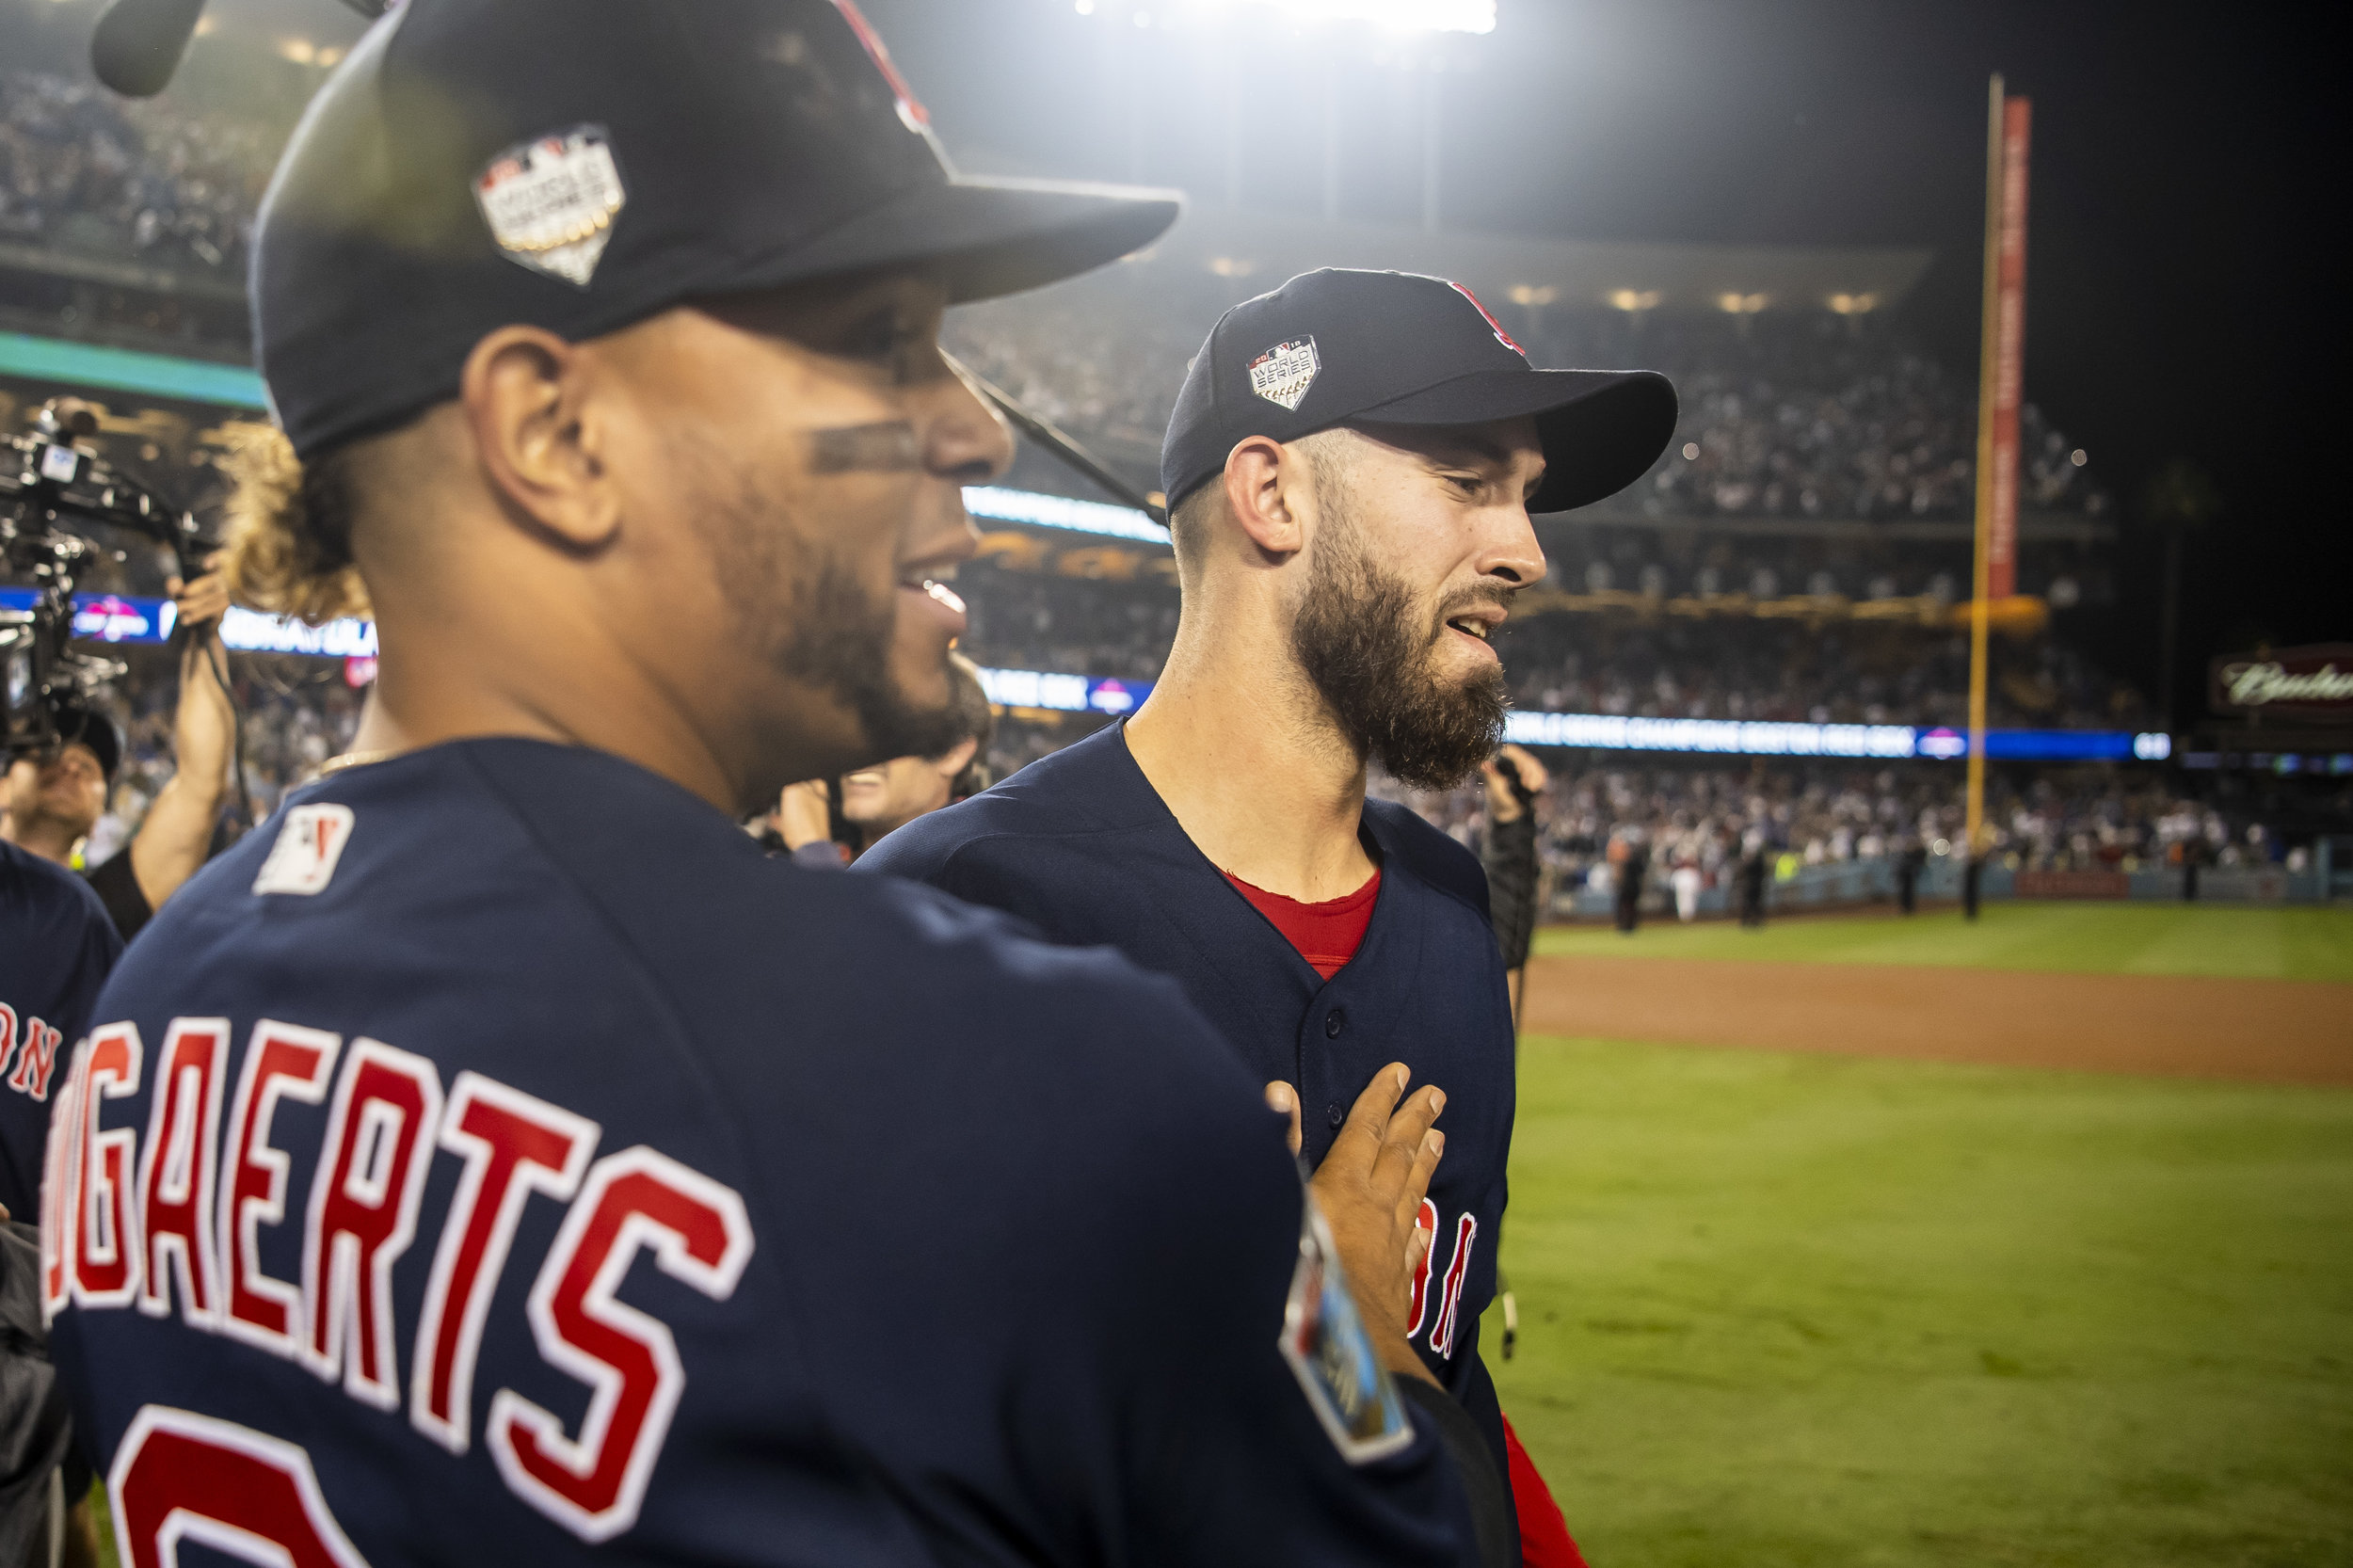 October 28, 2018, Los Angeles, Ca: Boston Red Sox shortstop Xander Bogaerts pats Boston Red Sox pitcher Rick Porcello's chest after the Boston Red Sox defeated the Los Angeles Dodgers in Game 5 to win the World Series at Dodger Stadium in Los Angeles, California on Saturday, October 28, 2018. (Photo by Matthew Thomas/Boston Red Sox)